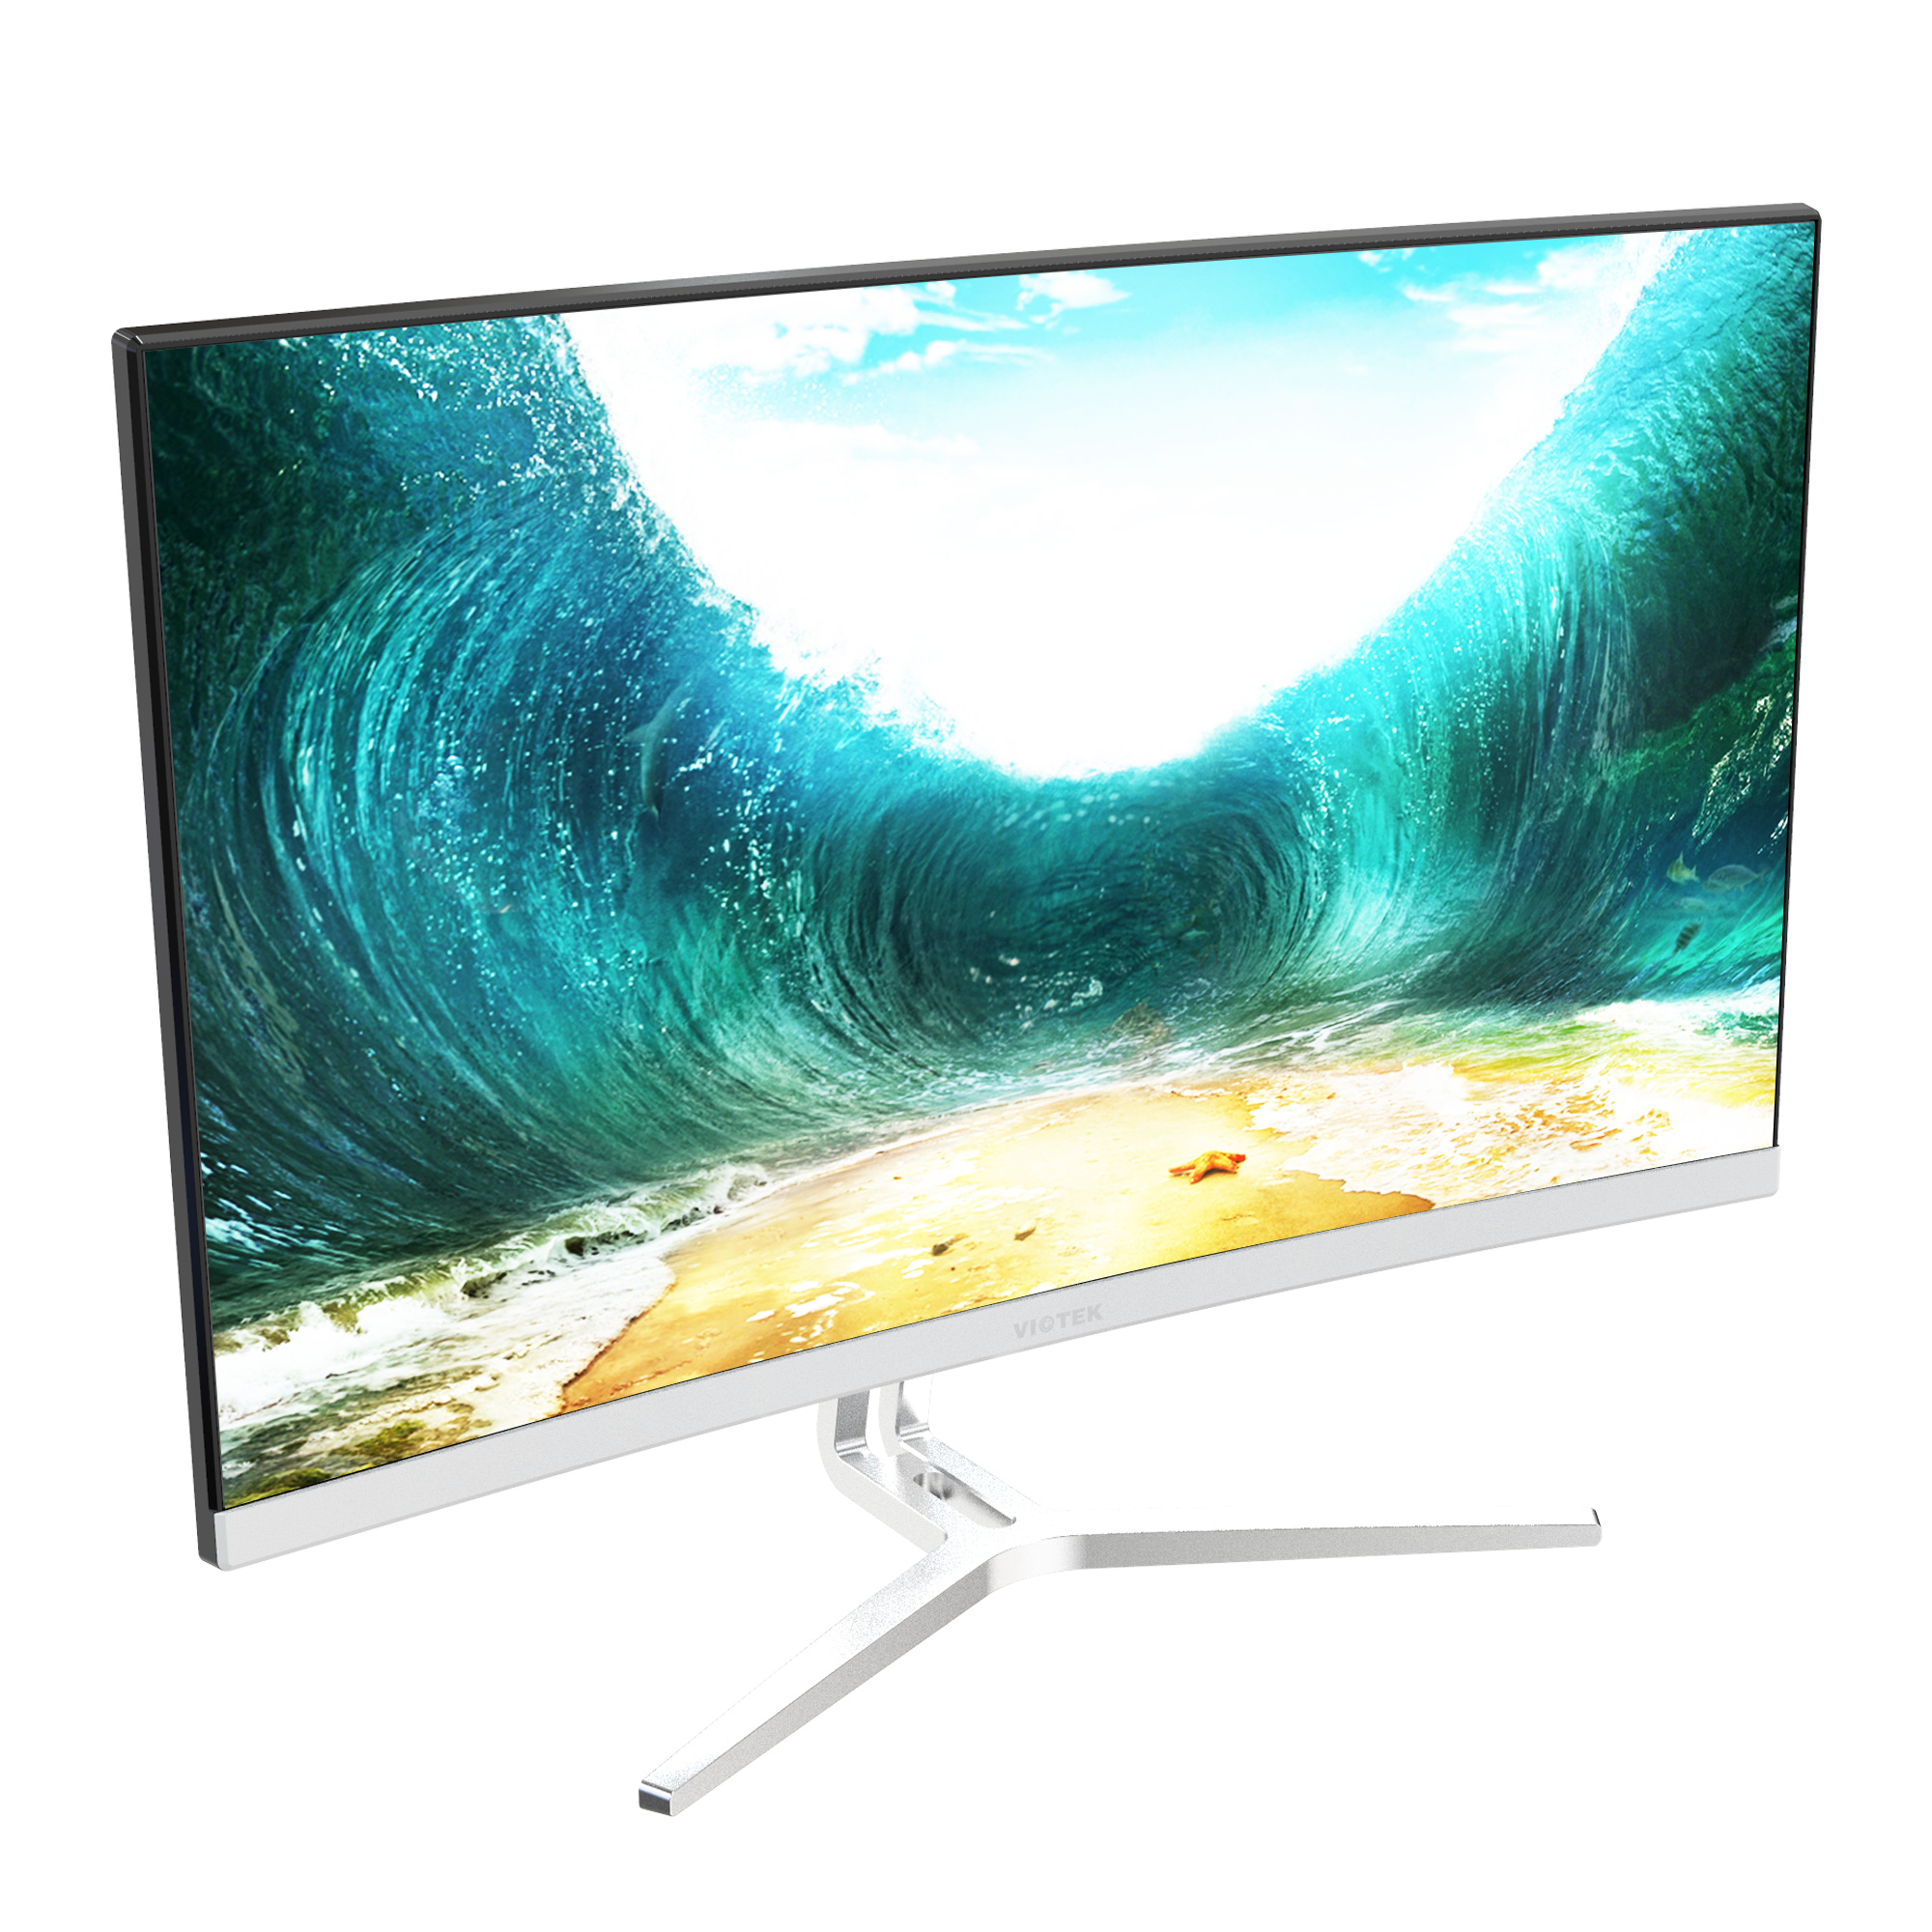 VIOTEK NB24CB 24-inch Curved Monitor with Speakers, Bezel-less, 75Hz 1080P FreeSync VGA HDMI VESA - Xbox Ready